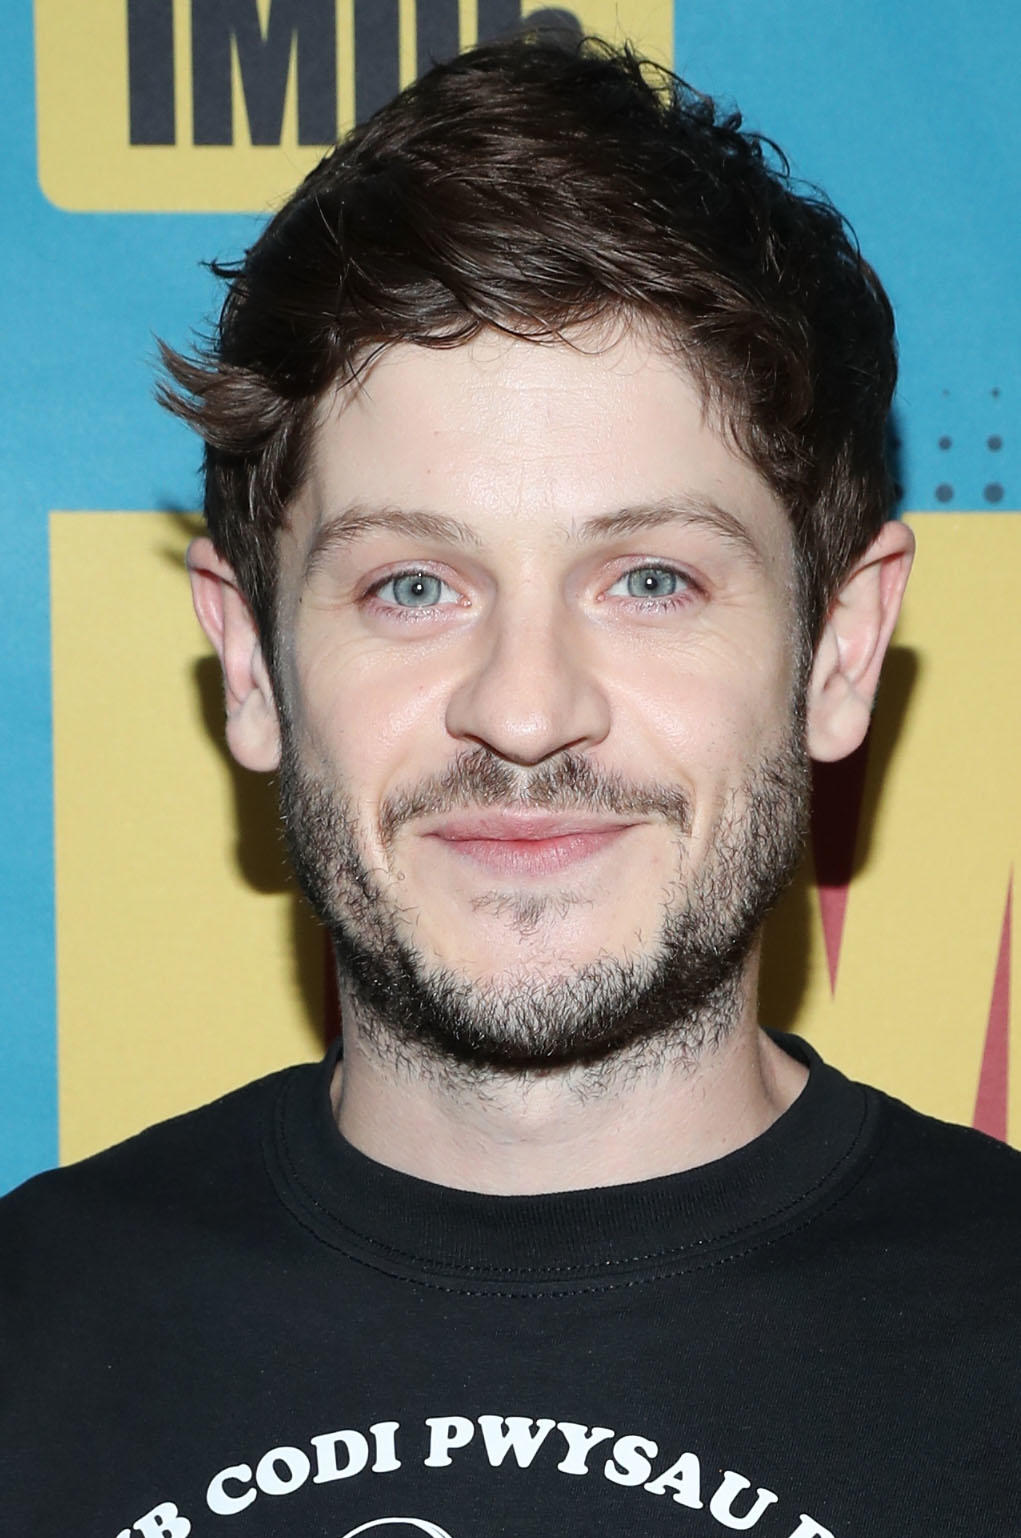 Iwan Rheon at the #IMDboat at San Diego Comic-Con 2017.